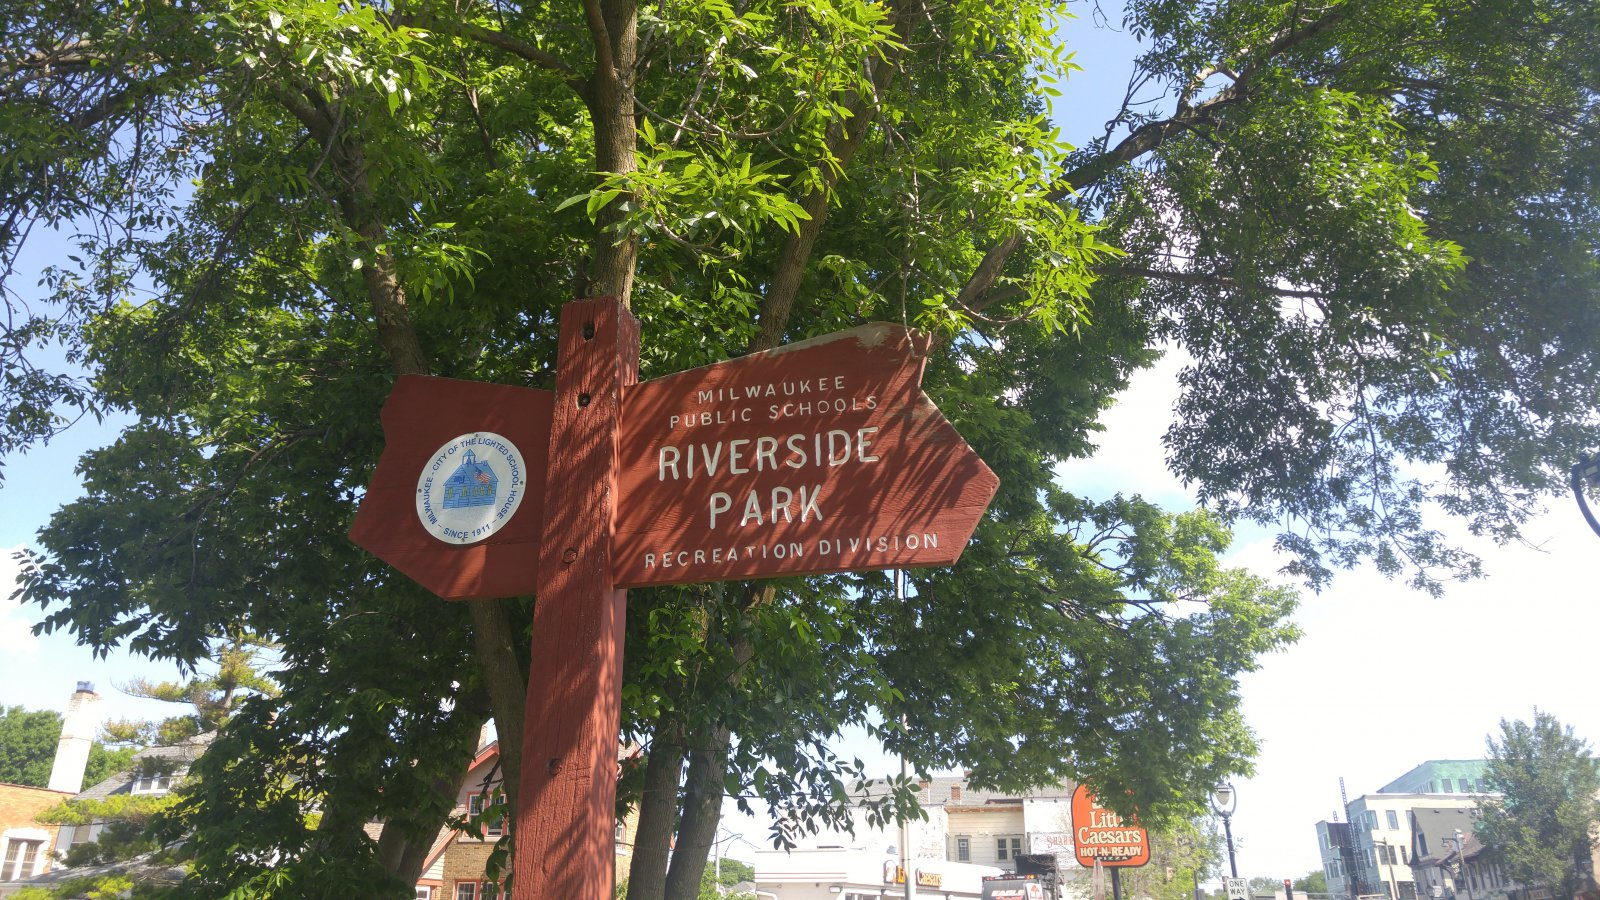 Riverside Park is at the west end of Newberry Boulevard